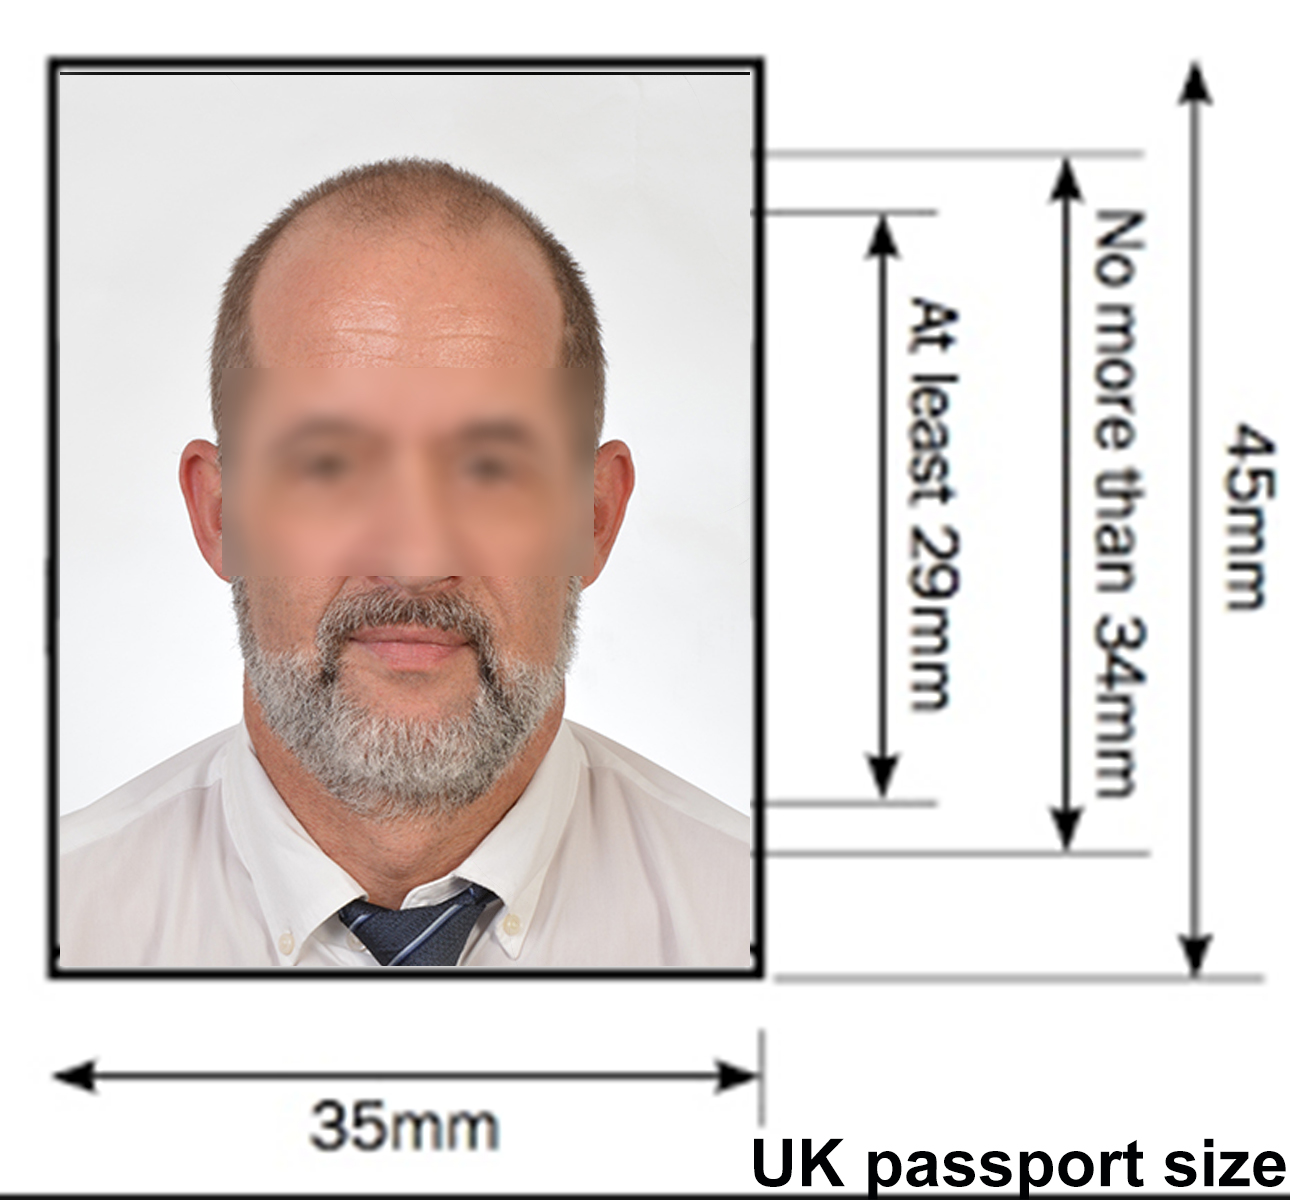 Passport-photo-uk-03 - Professional Photo Headshot Studio Passport amp; Thispix